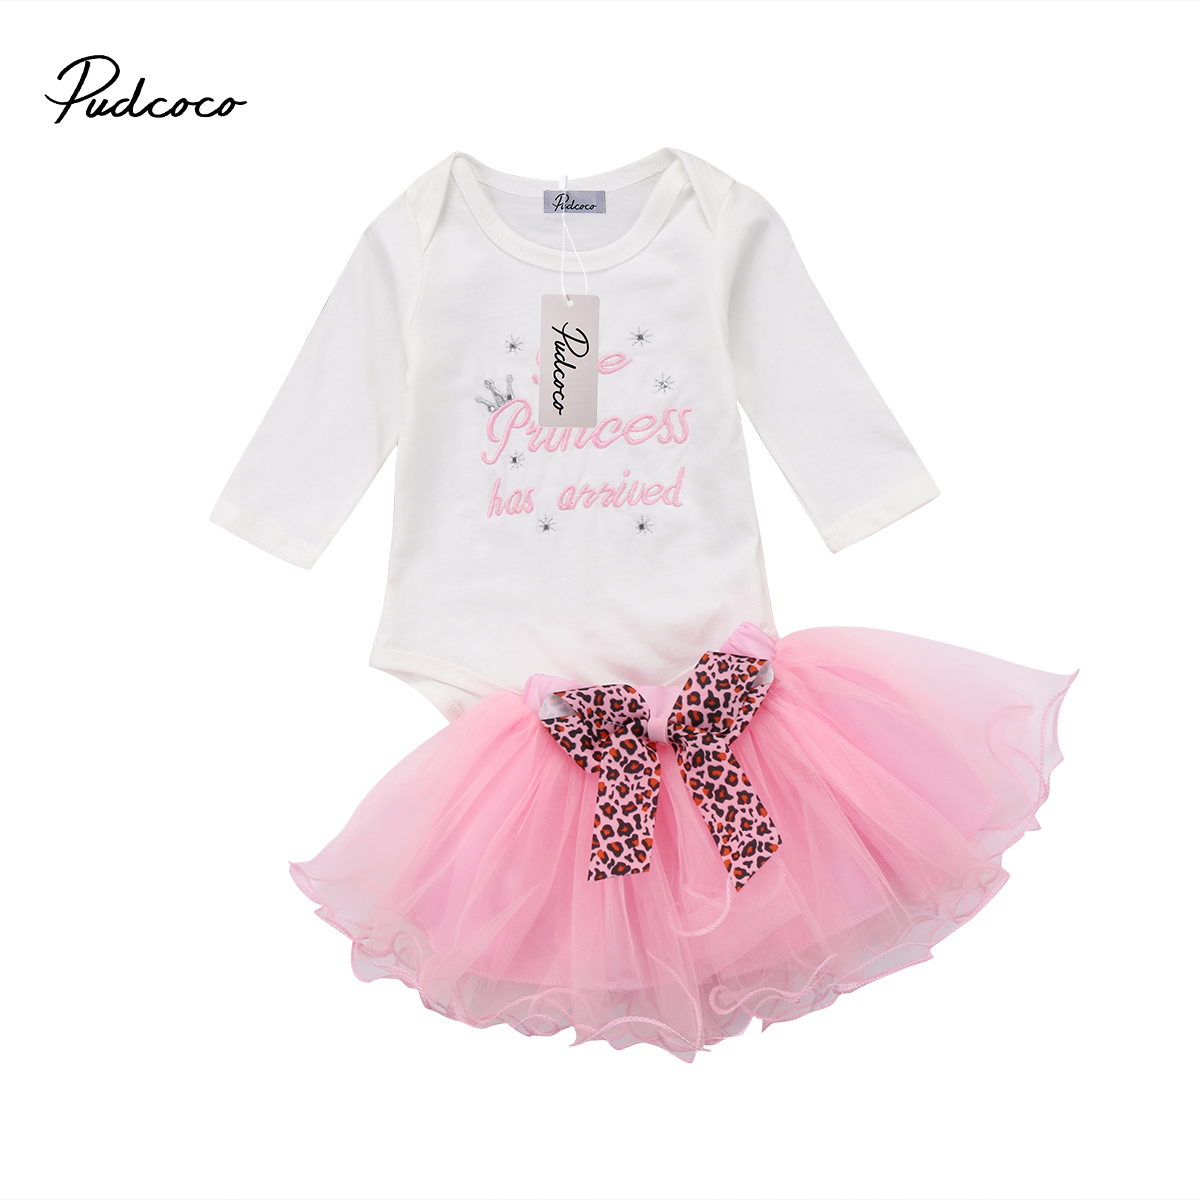 Pudcoco Newborn Infant Baby Girl Princess Clothing Sets Cotton Romper Tops Playsuit+Tull ...